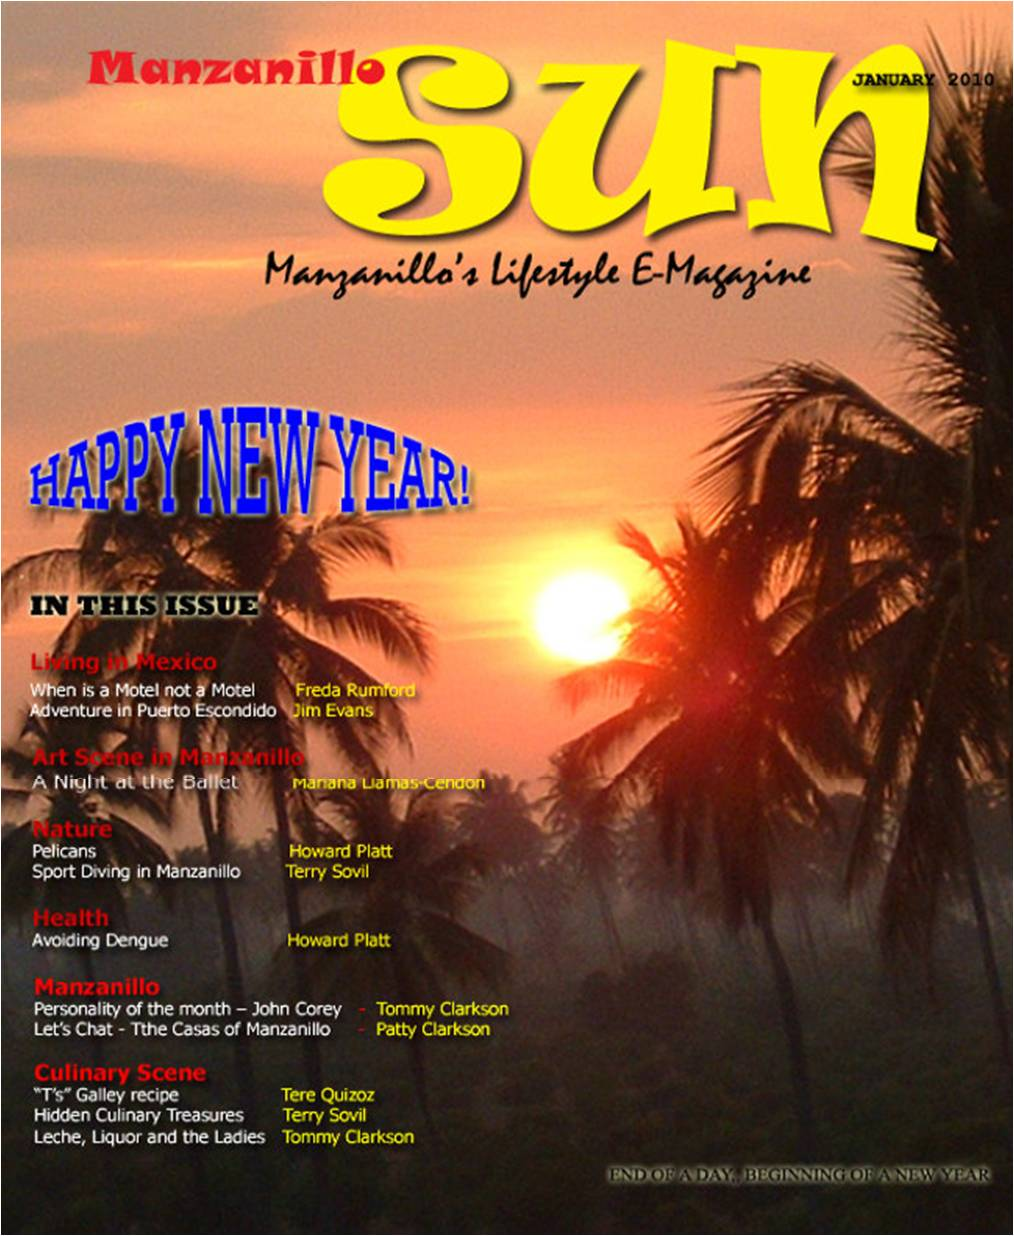 Manzanillo Sun January 2010 cover